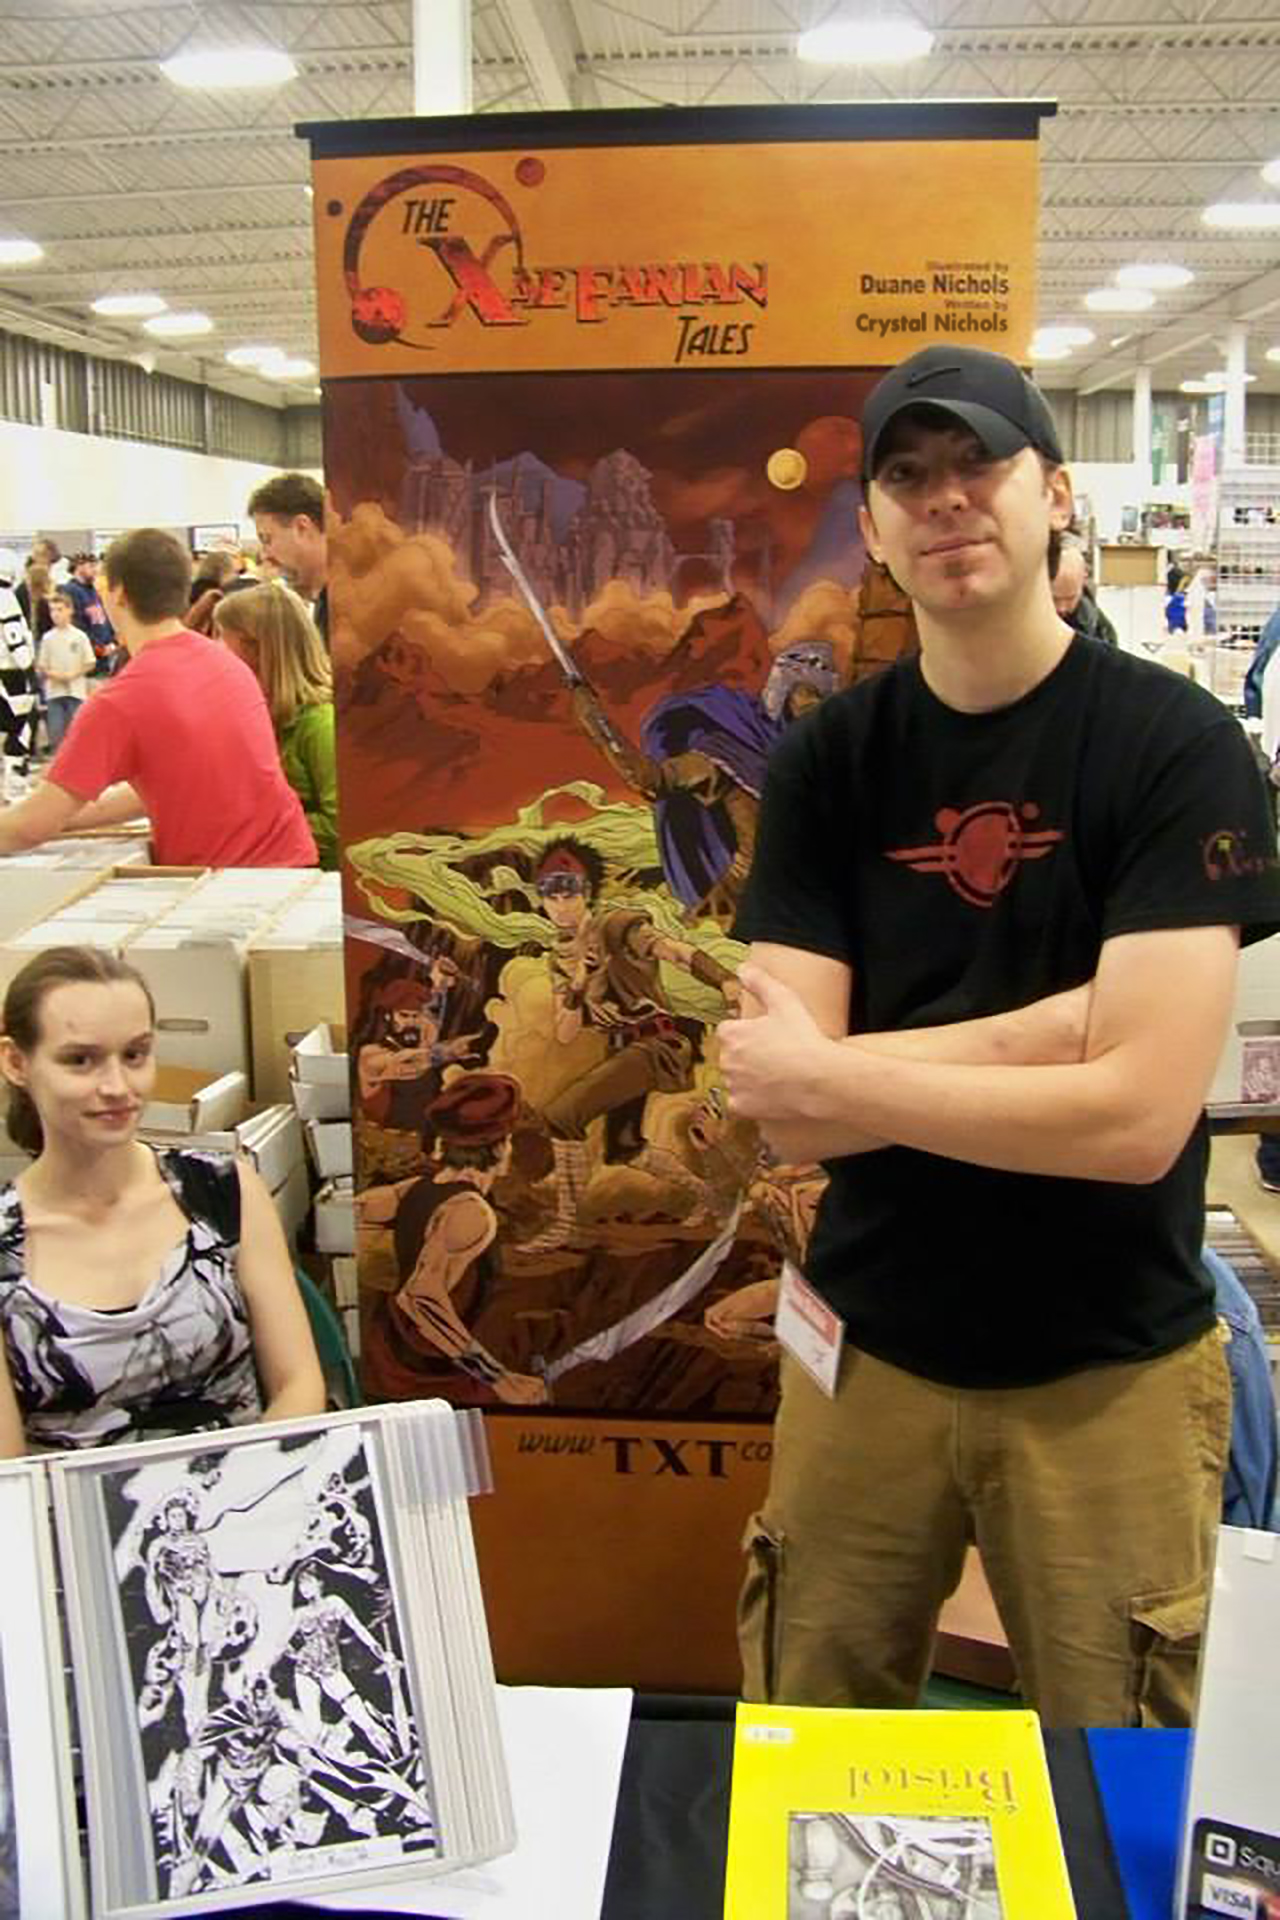 Duane and Crystal Nichols at The Xaefarian Tales table at a convention